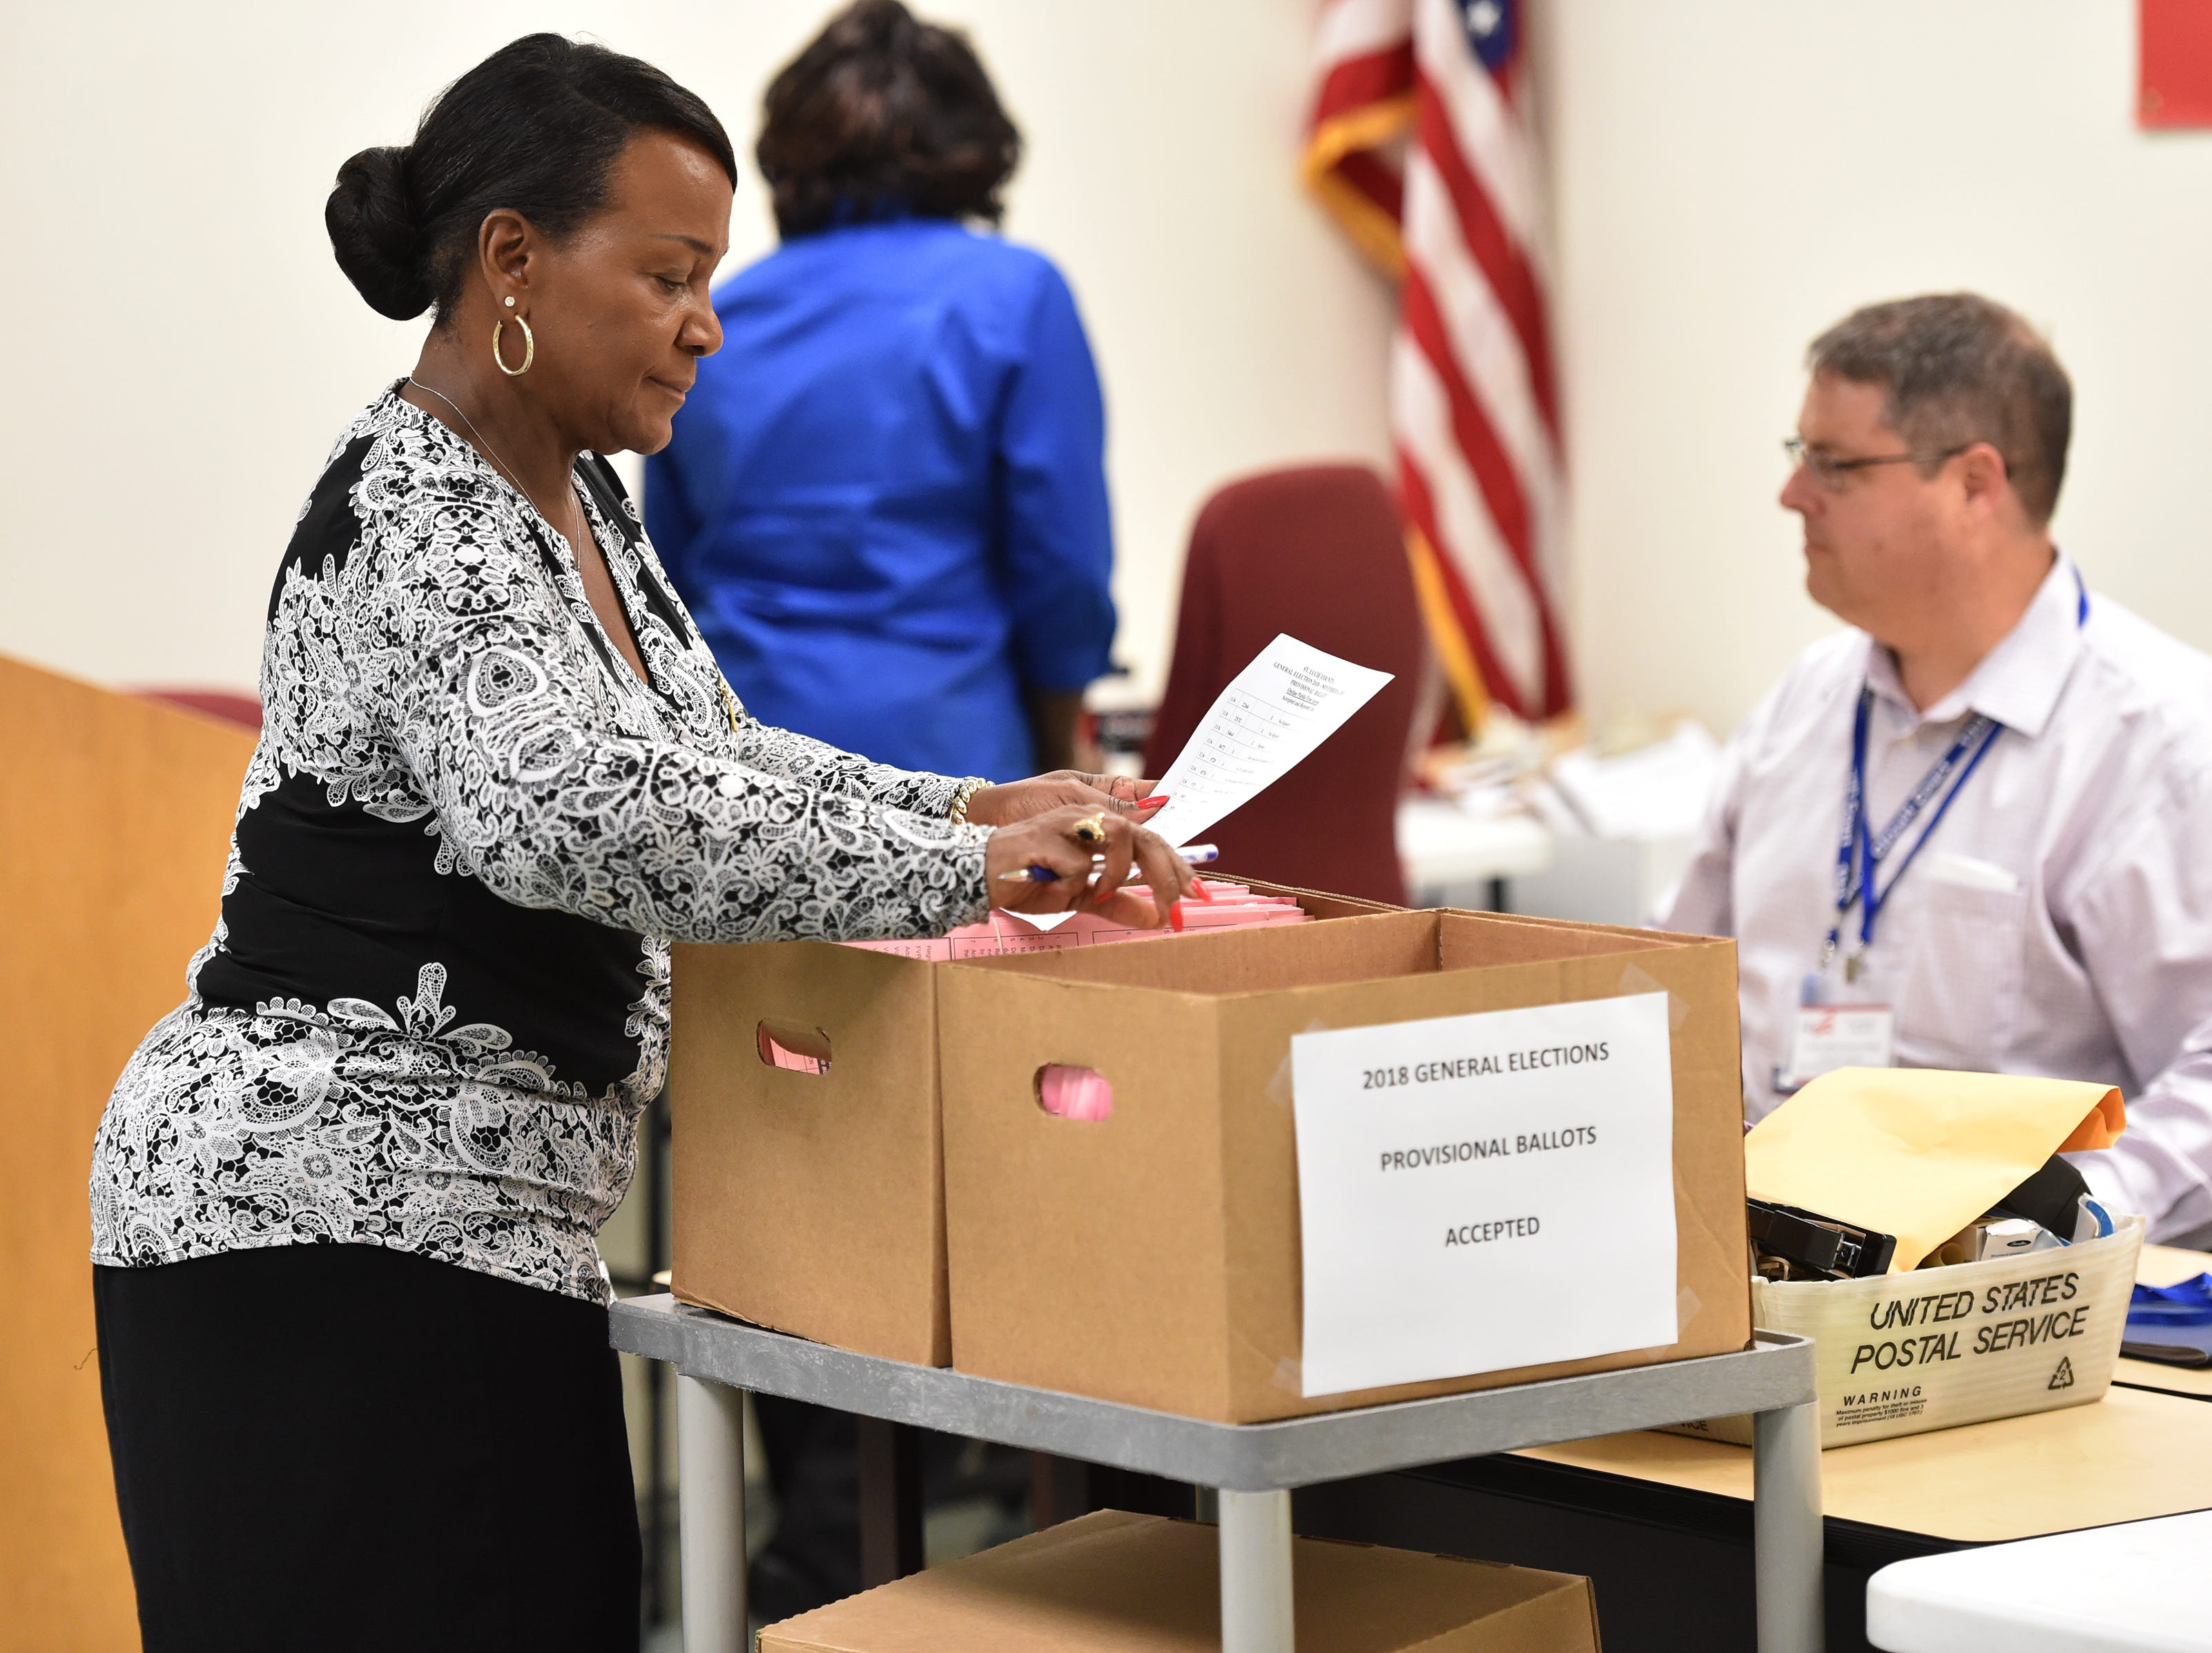 Members of the St. Lucie County Supervisor of Elections canvassing board review provisional ballots to be verified or rejected on Thursday, Nov. 8, 2018, at their office in Fort Pierce. A provisional ballot is a ballot that is counted only when the Supervisor of Elections office can verify the person who cast it is eligible to vote.